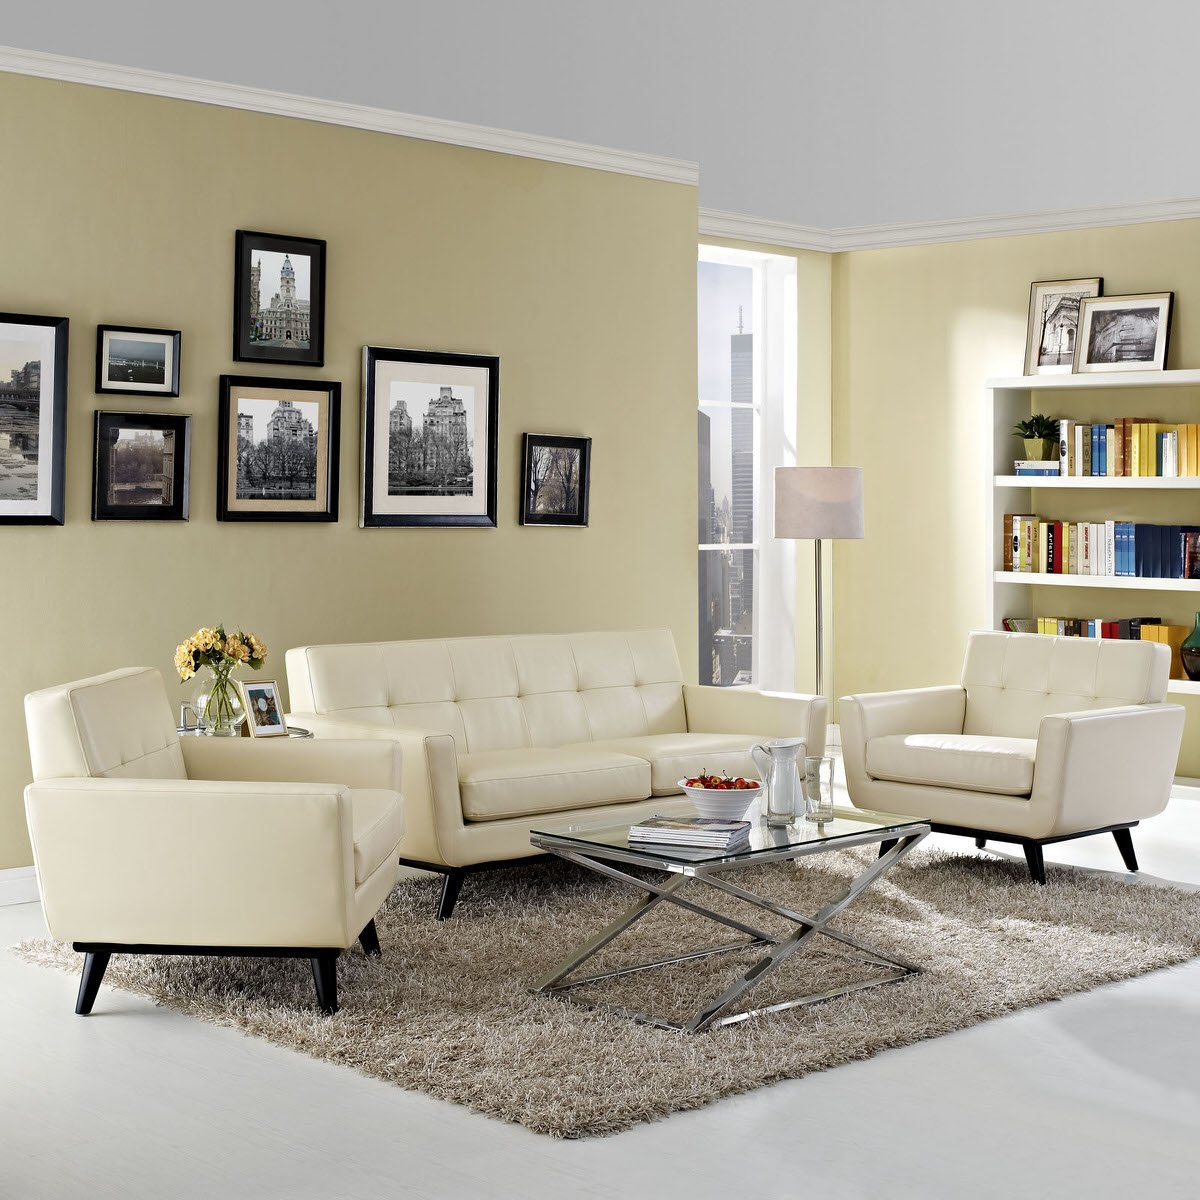 Engage 3 Piece Leather Living Room Set Beige by Modway